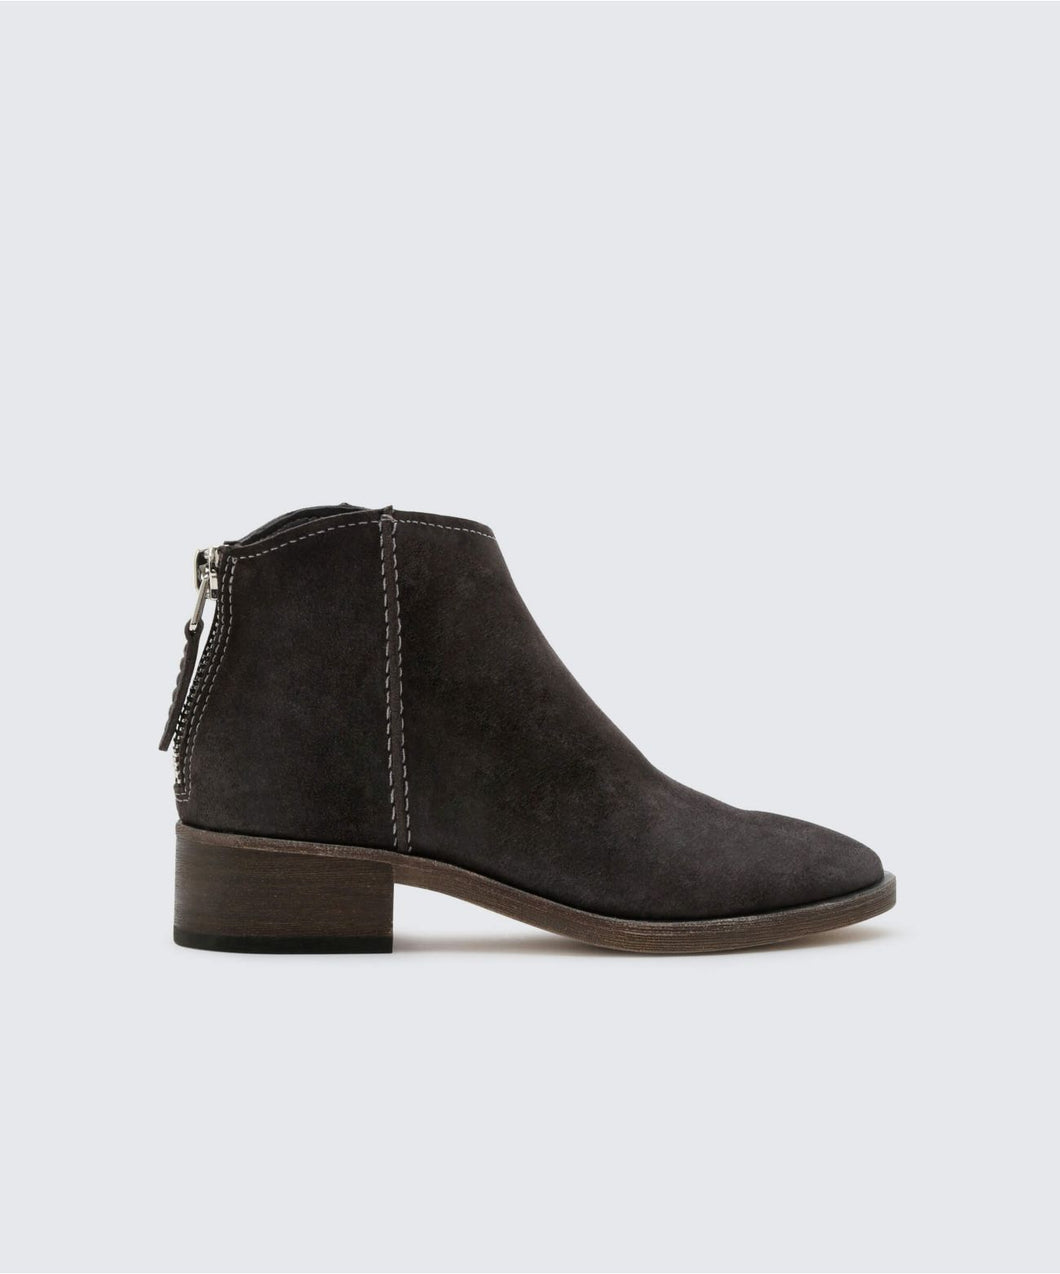 TUCKER BOOTIES IN ANTHRACITE -   Dolce Vita